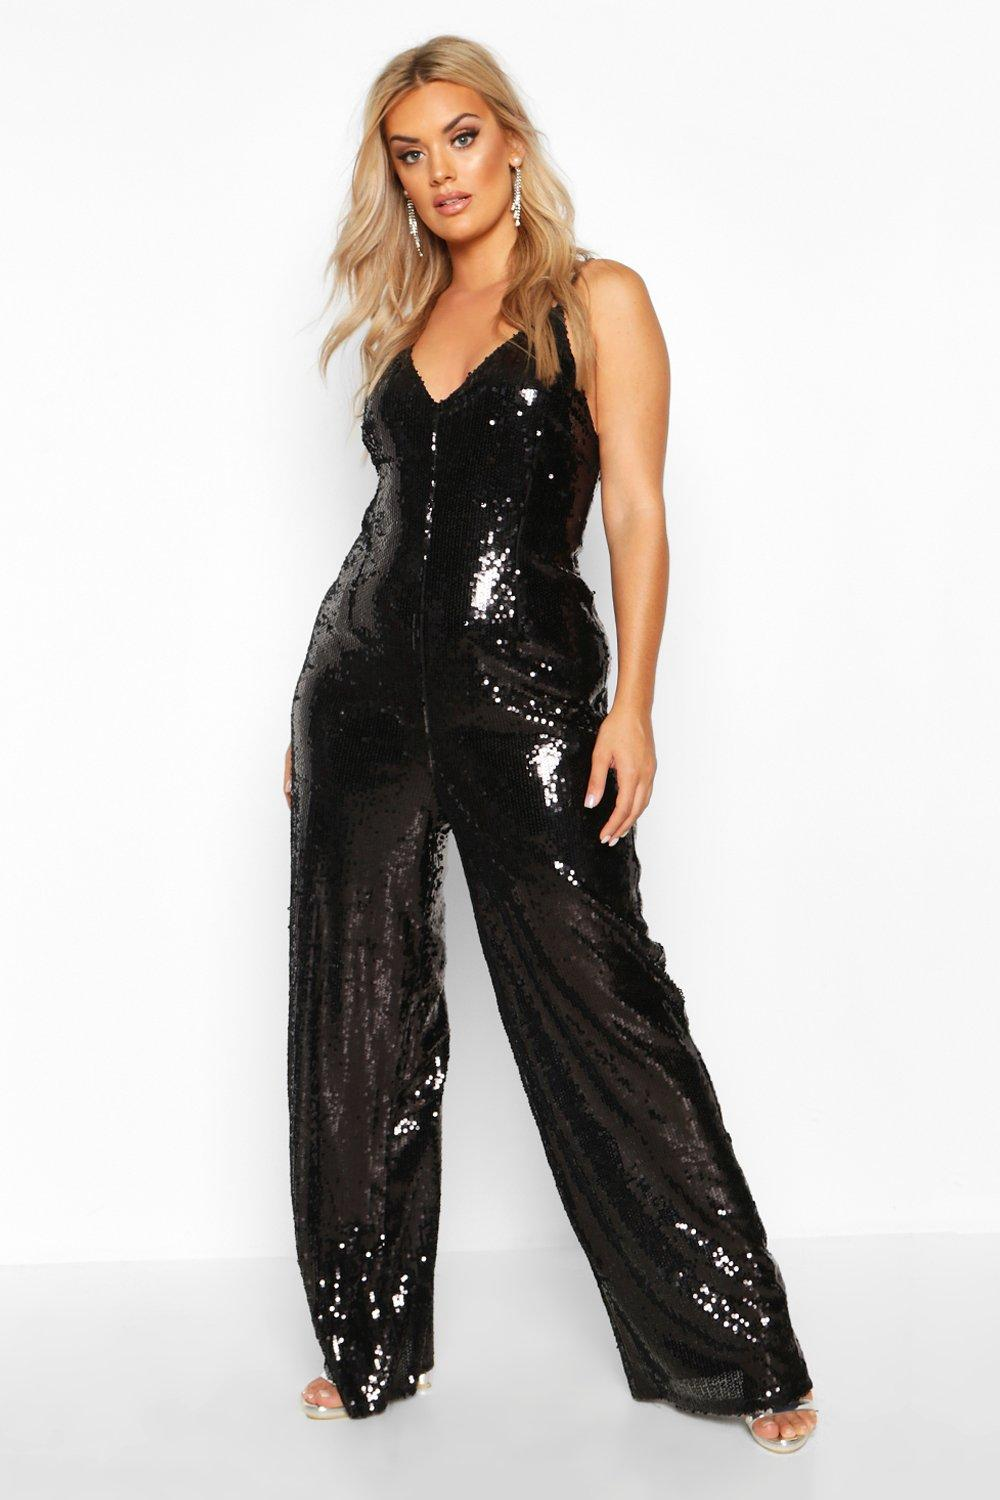 70s Disco Fashion: Disco Clothes, Outfits for Girls Womens Plus Sequin Strappy Wide Leg Jumpsuit - Black - 16 $40.00 AT vintagedancer.com